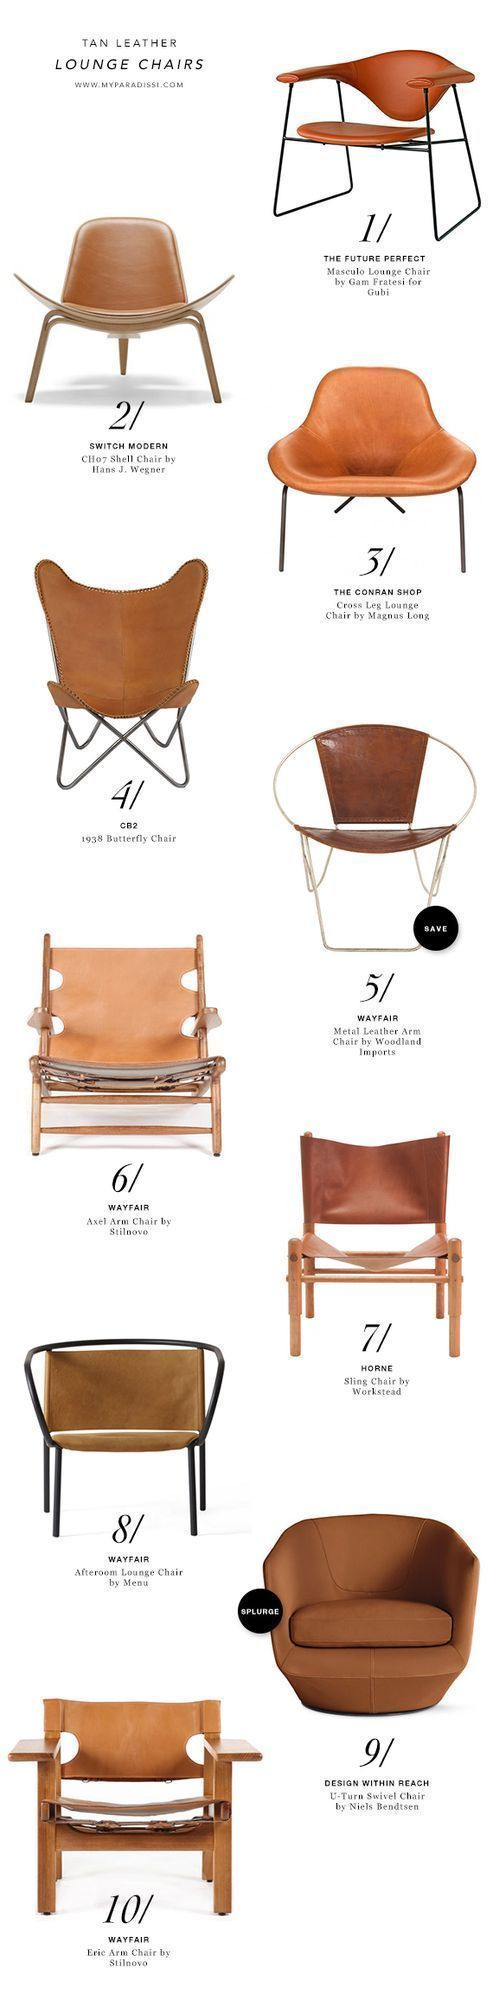 10 BEST: Tan leather lounge chairs. Love the scandi feel of these simple classic chairs #scandi #leather #ChairClassic